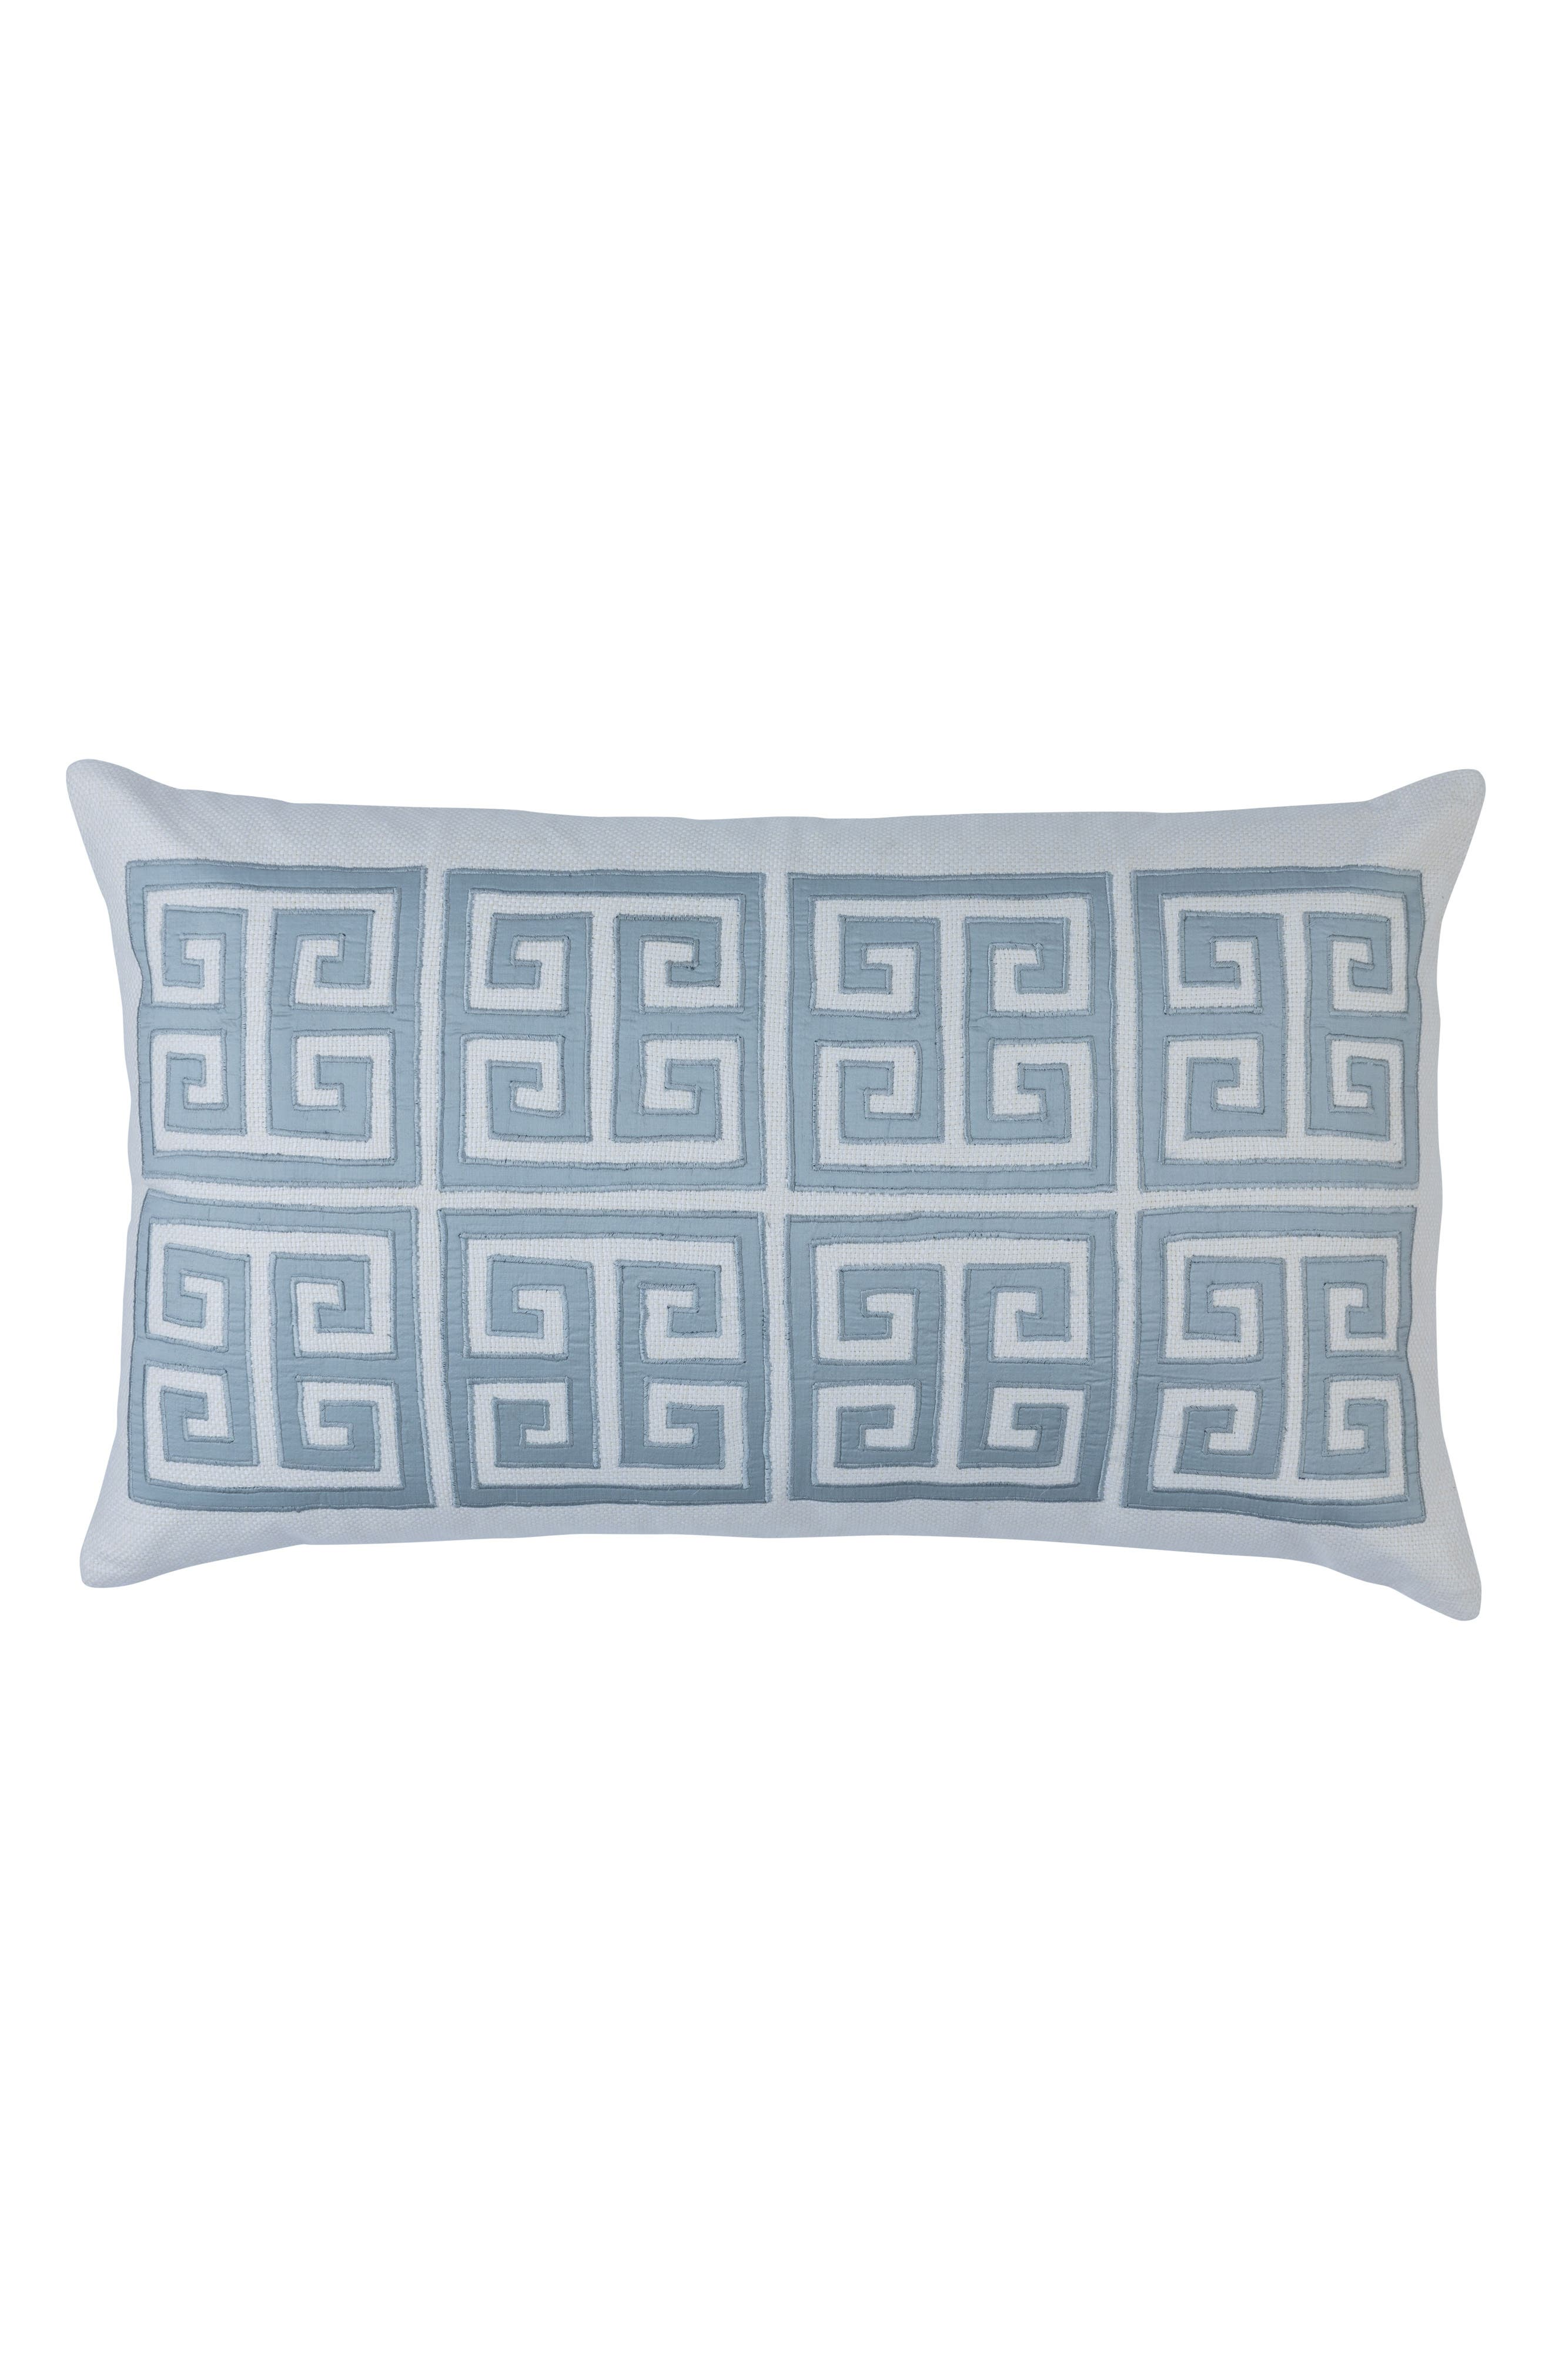 Guy Basket Weave Embroidery Accent Pillow,                             Main thumbnail 1, color,                             BLUE